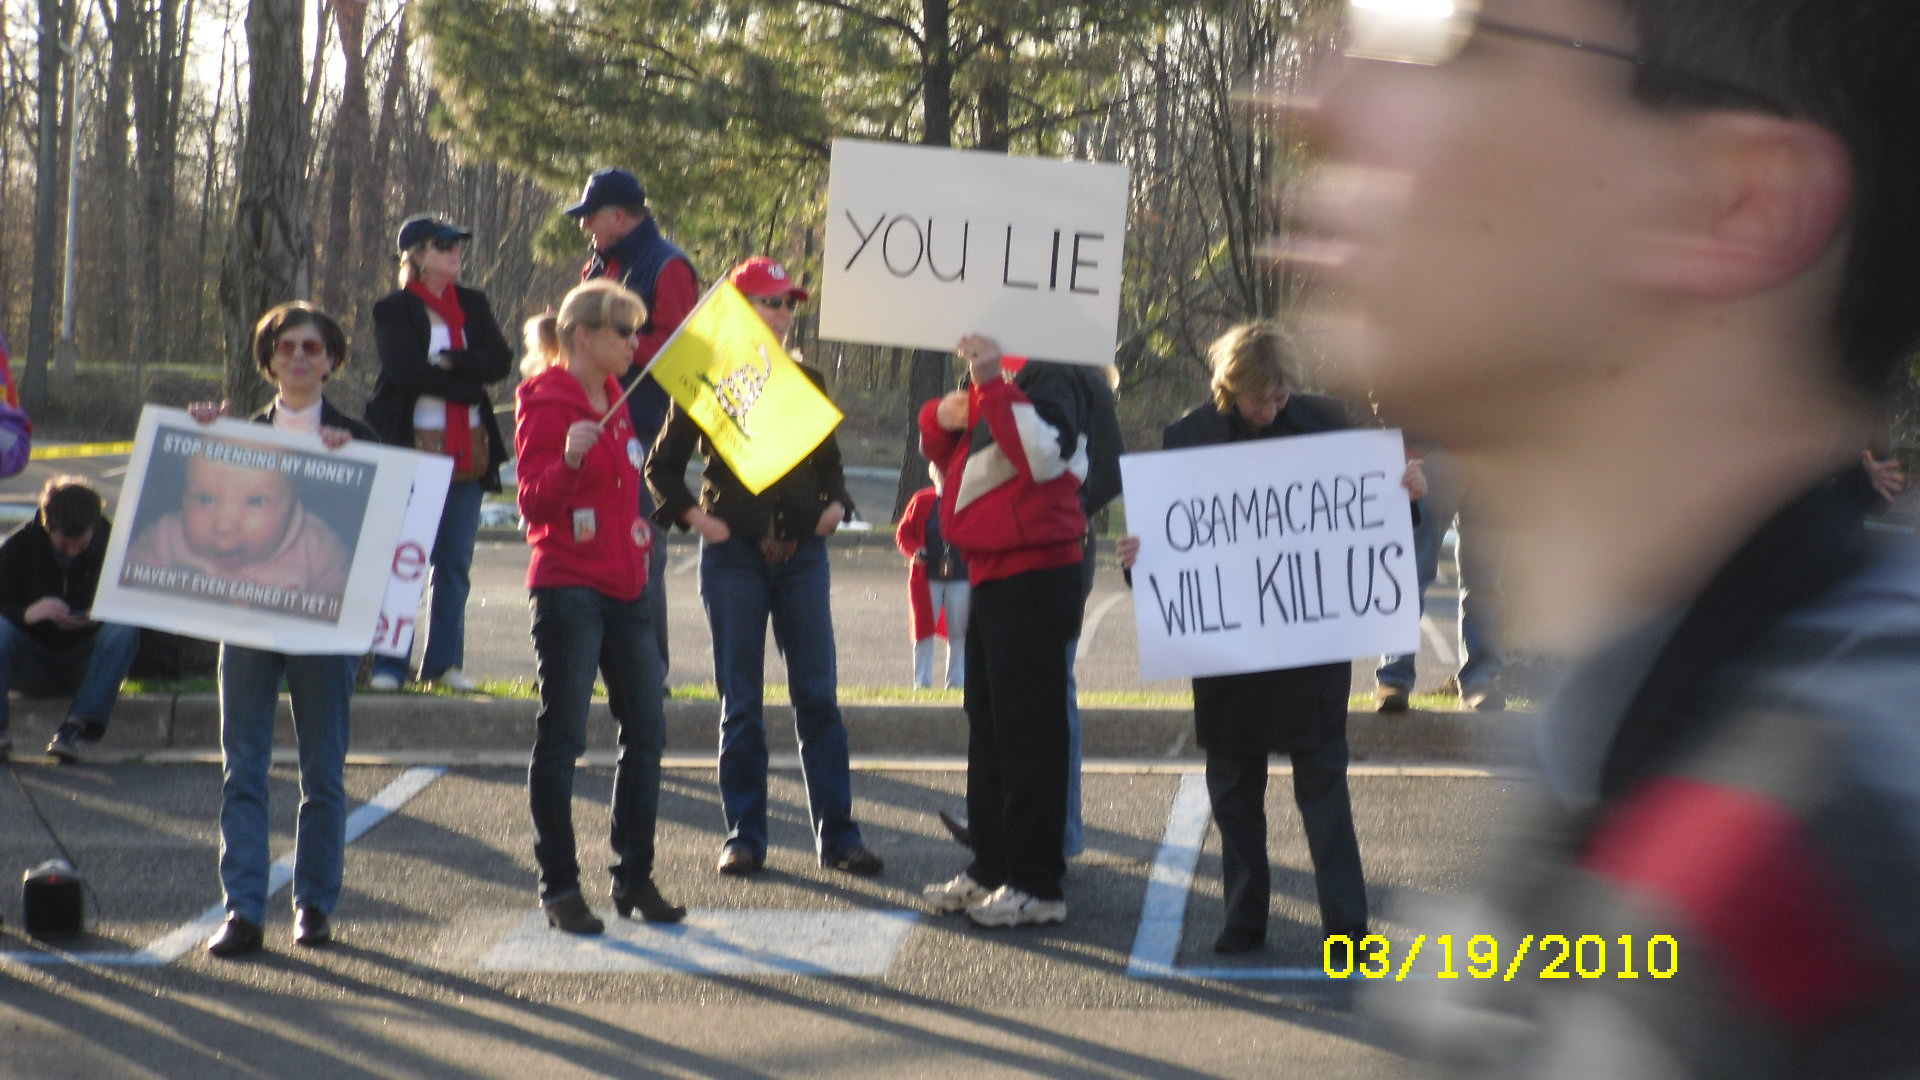 Ch 15 - Outside Healthcare Rally